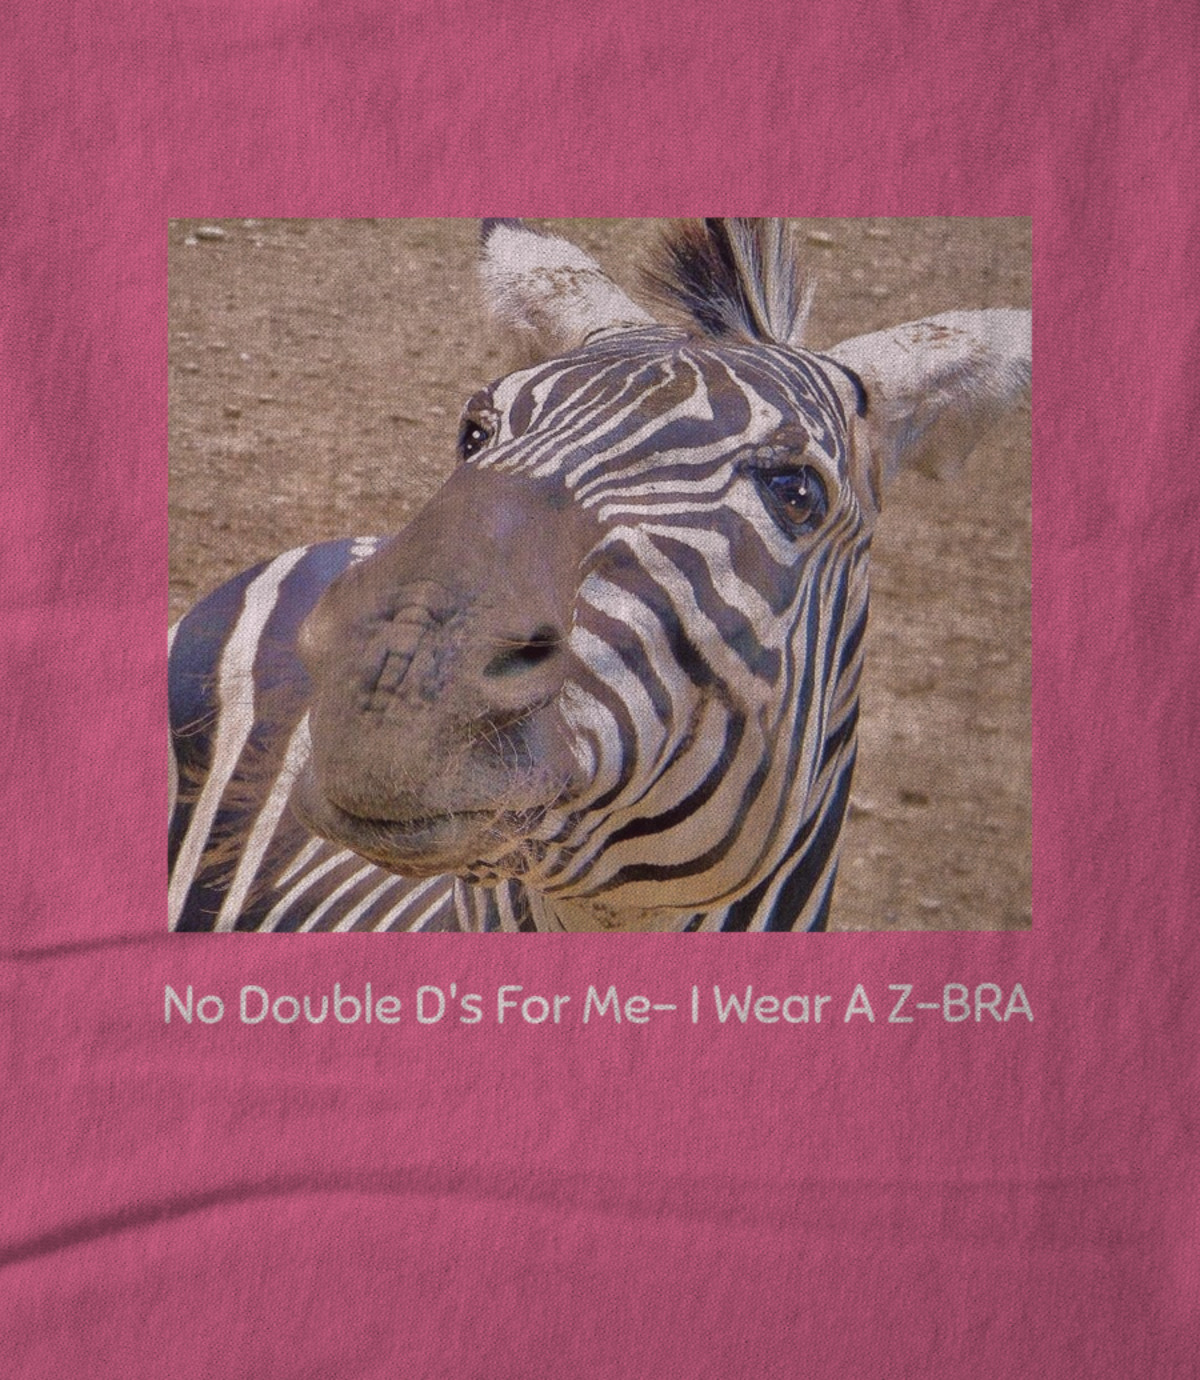 Art whimsically yours studio no double d s for me iwear a z bra  1535513980